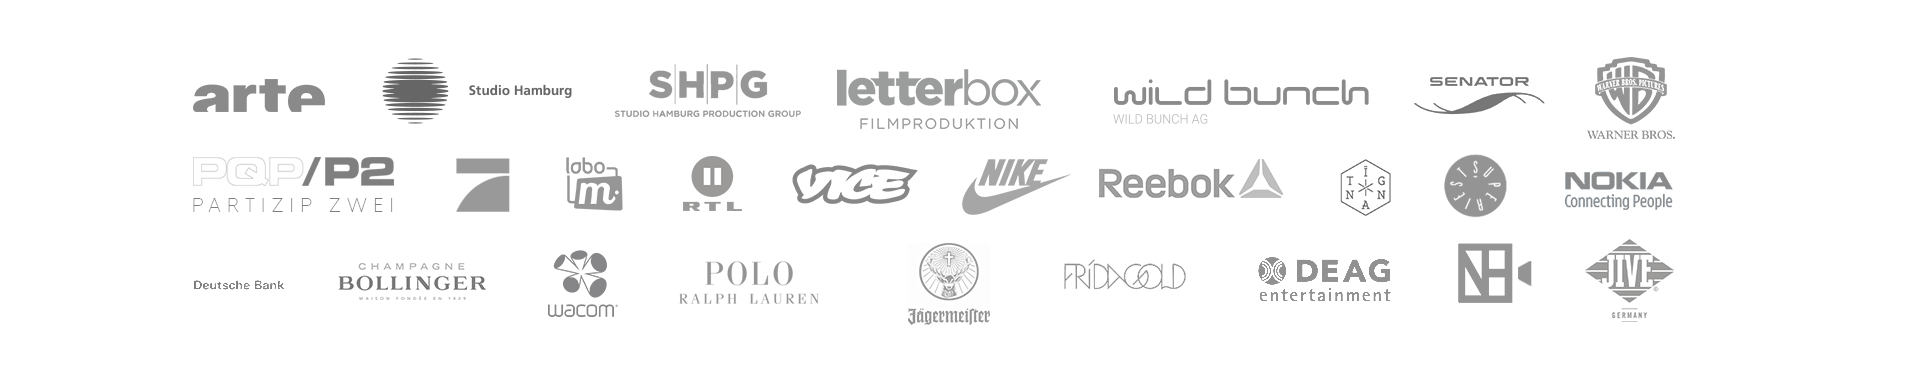 Clients: ARTE, Studio Hamburg, Letterbox Filmproduktion, Wild Bunch AG, Senator Film, Warner Bros Pictures, Partizip Zwei Berlin, Pro Sieben, Labo M, RTL2, VICE, Nike, Reebok, Ignant, Superiest, Nokia, Deutsche Bank, Bollinger, Wacom, Polo Ralph Lauren, Jaegermeister, Frida Gold, DEAG Entertainment, Now Here Media, Jive